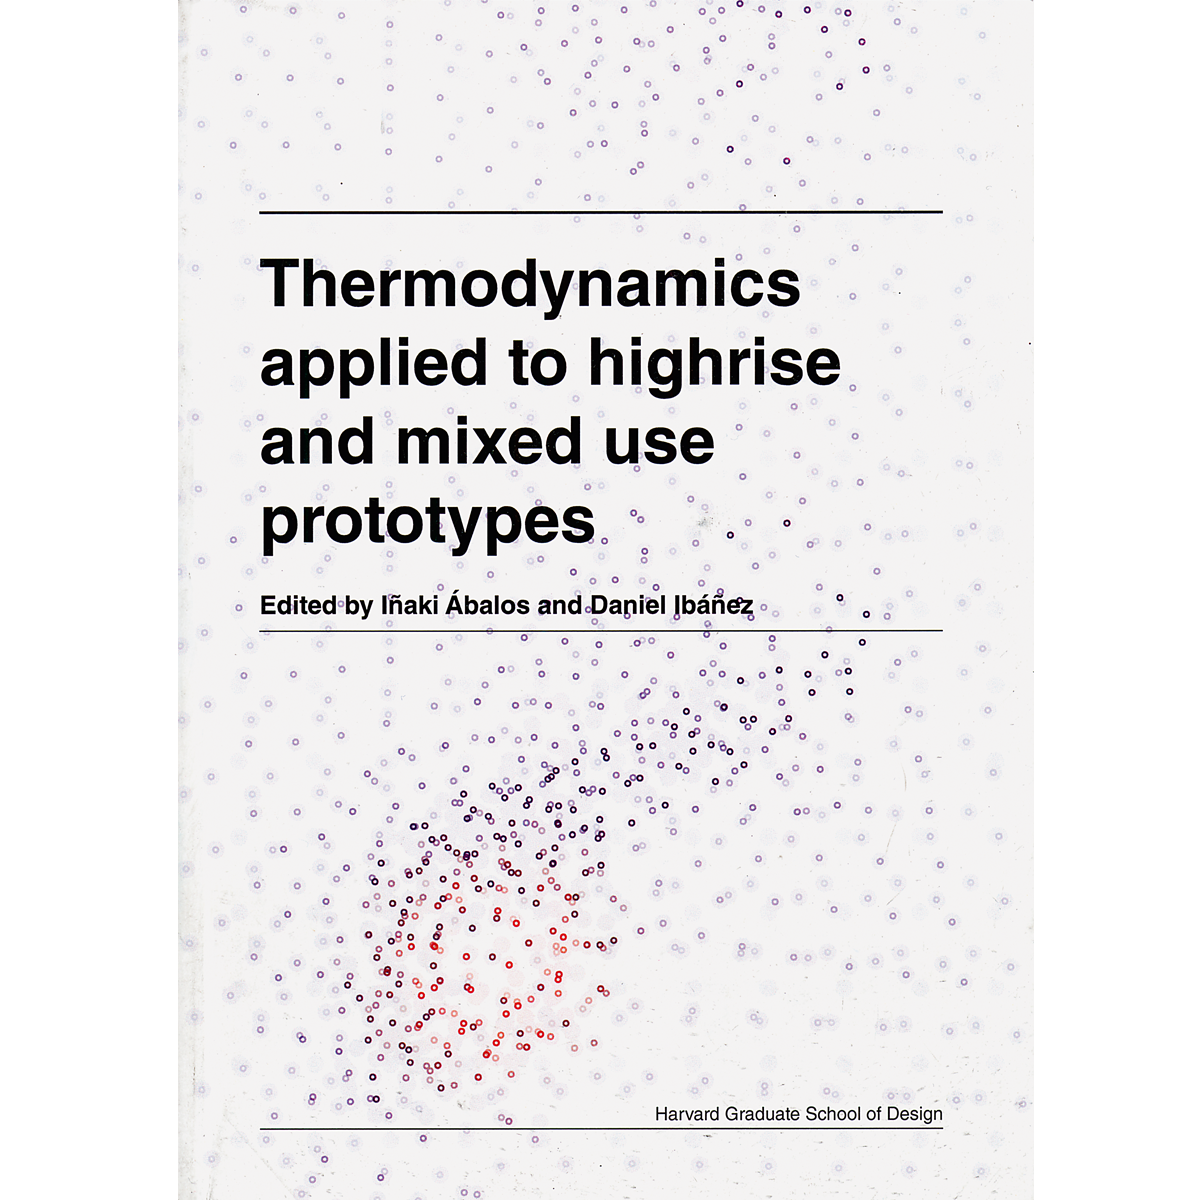 Thermodynamics applied to highrise and mixed use prototyped